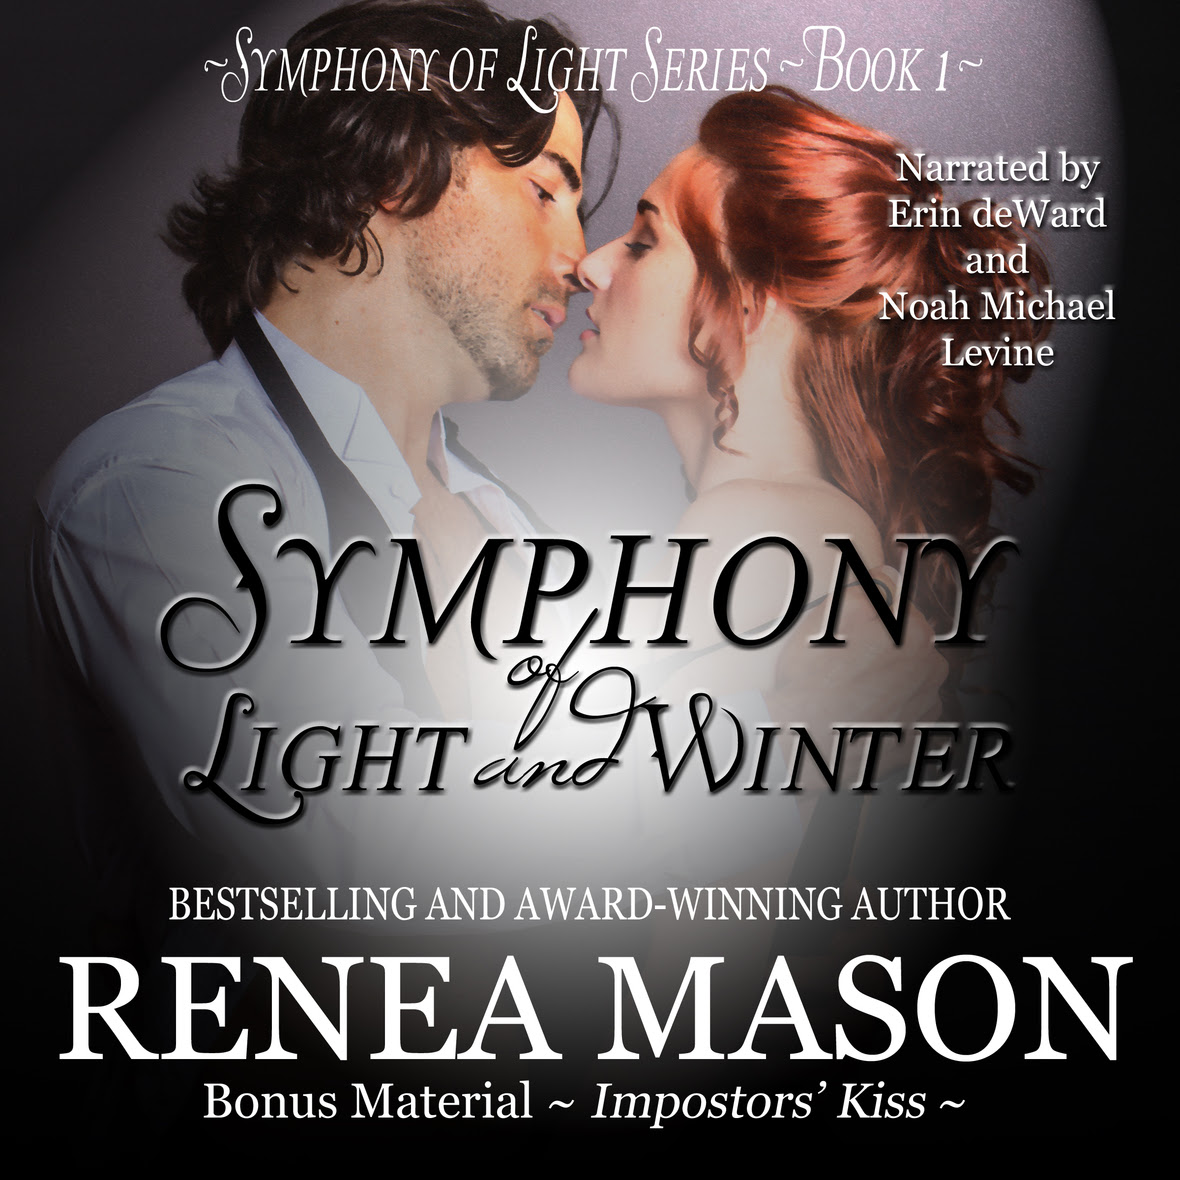 Renea-Winter-final-NEW copy 2